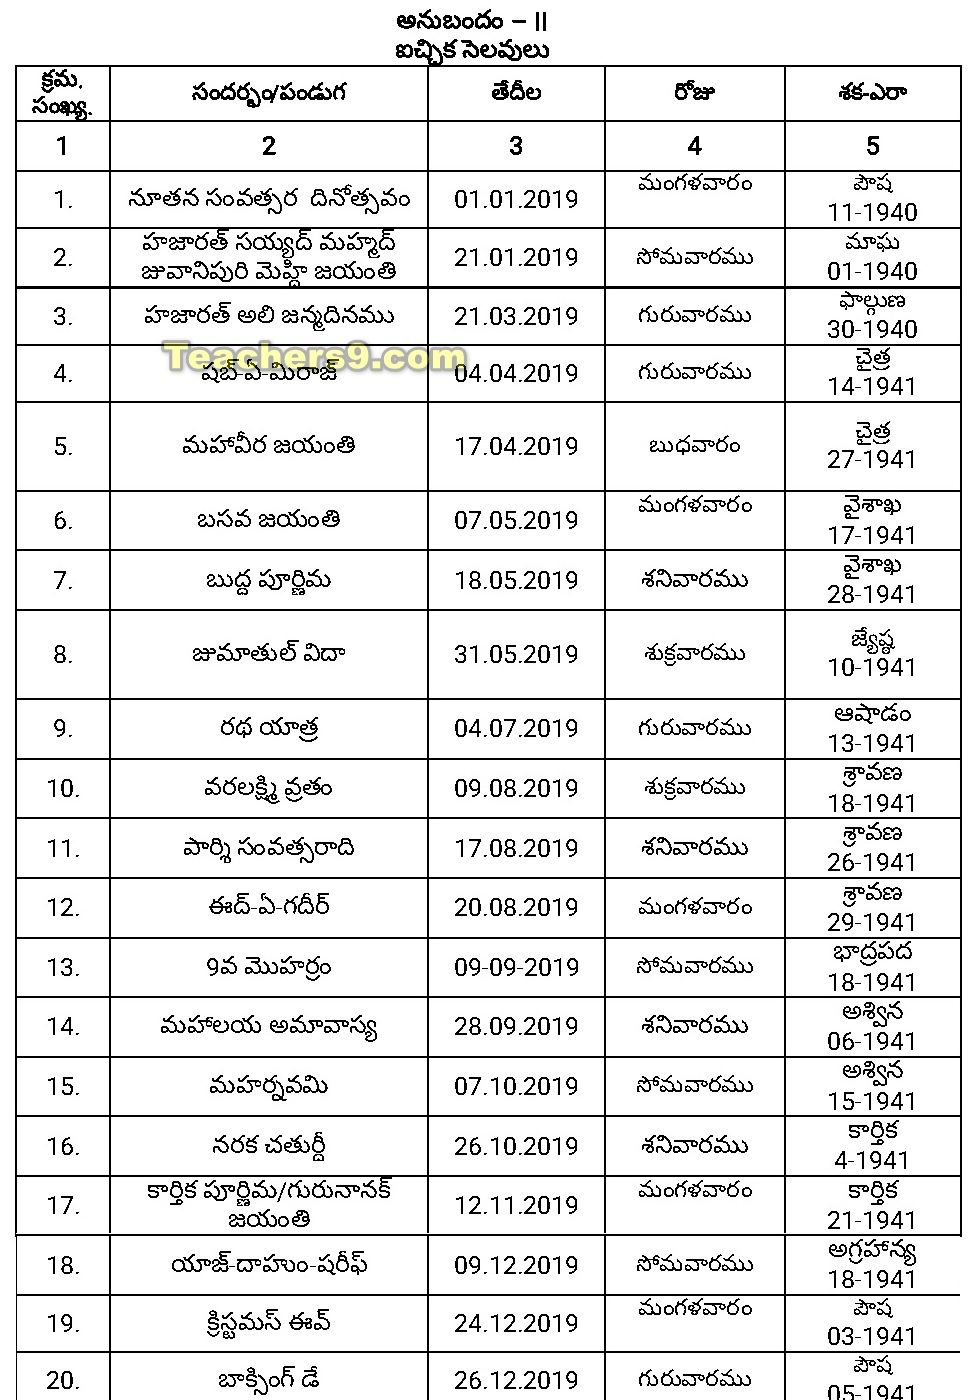 General Holidays and Optional Holidays for the year 2019 in Andhra Pradesh